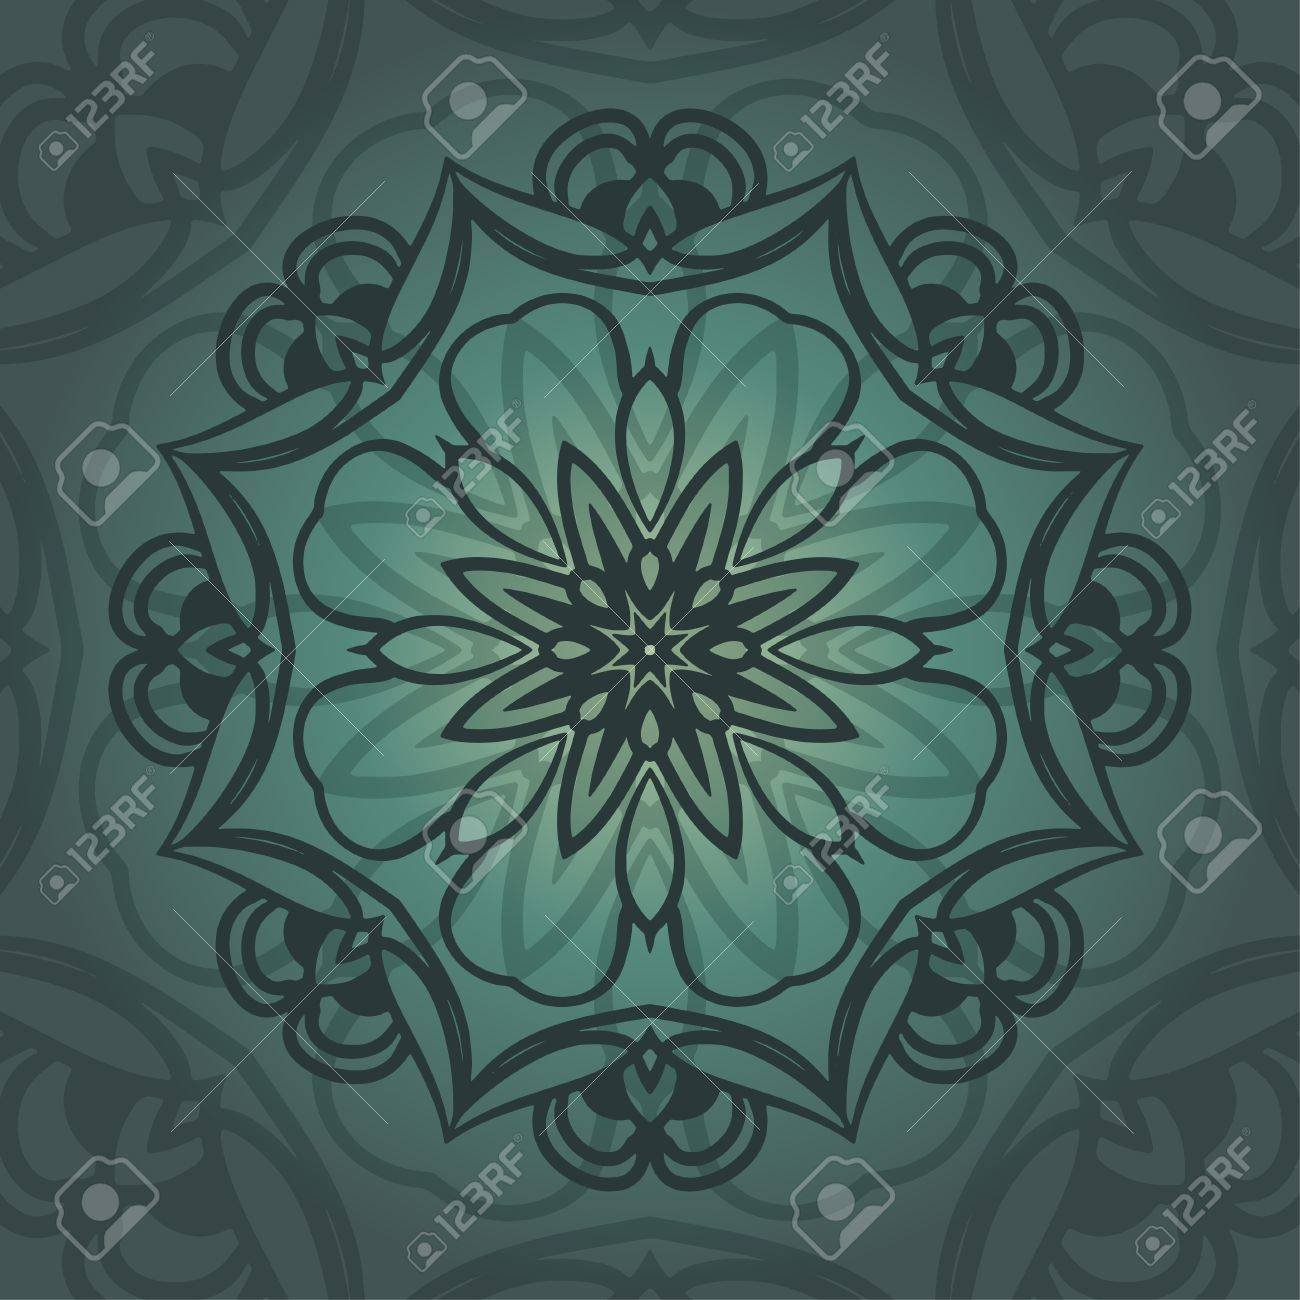 Mandala Card In Emerald Colors For Backgrounds Invitations 1300x1300